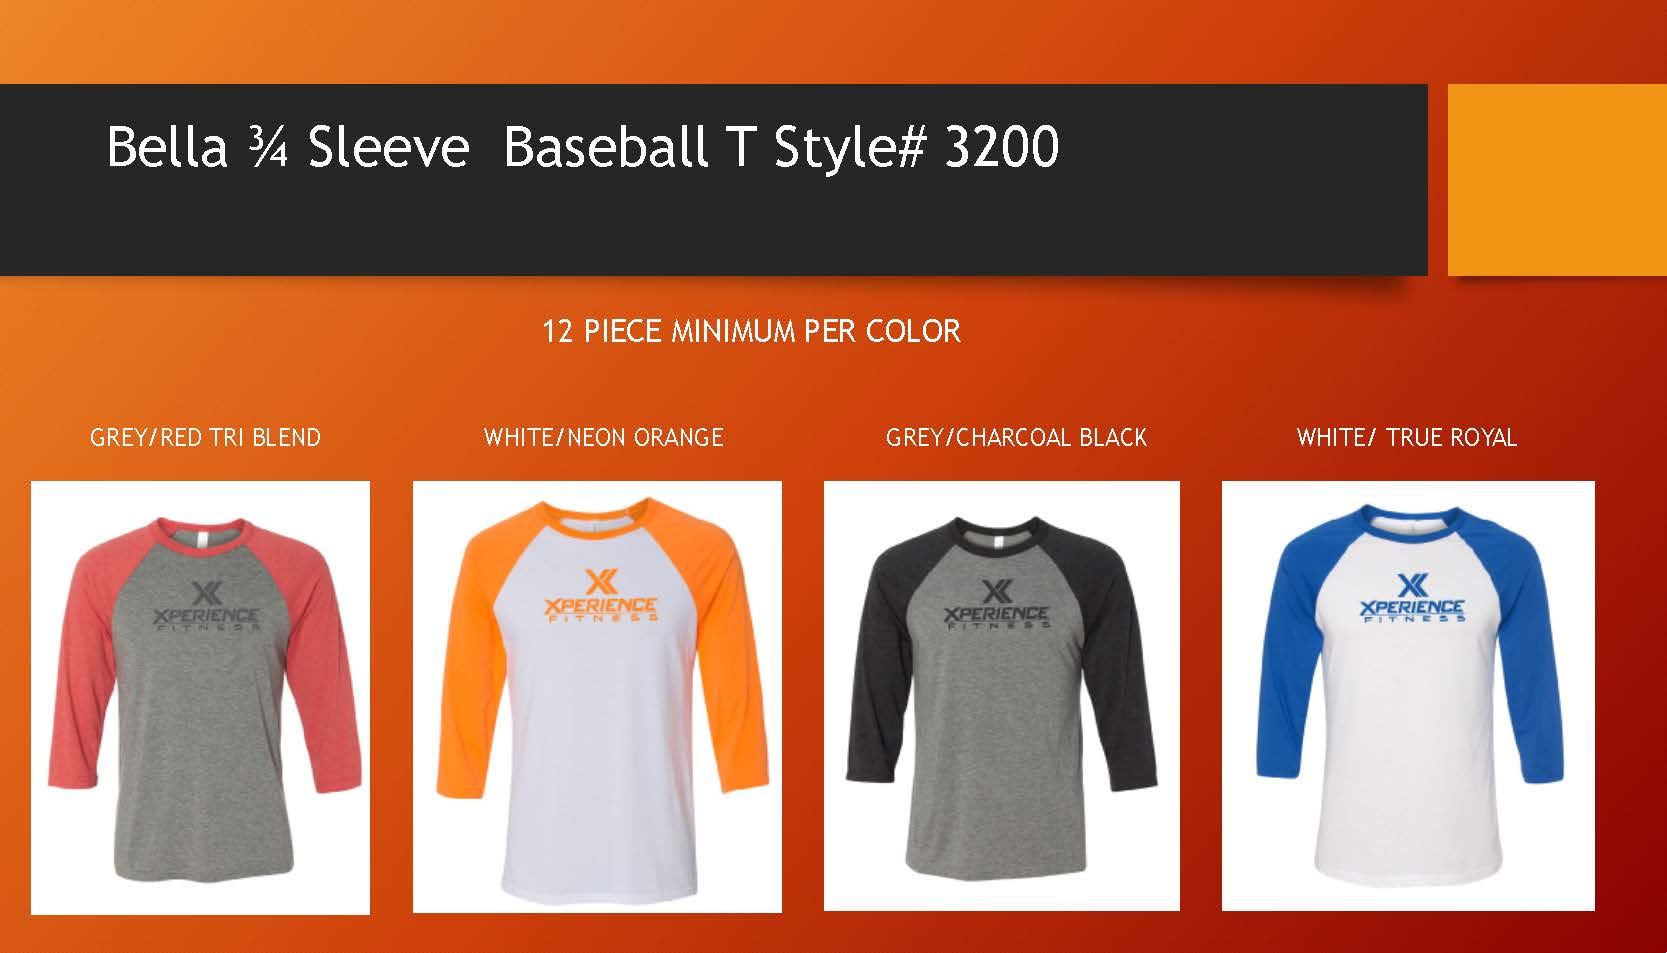 MORE COLOR OPTIONS AVAILABLE